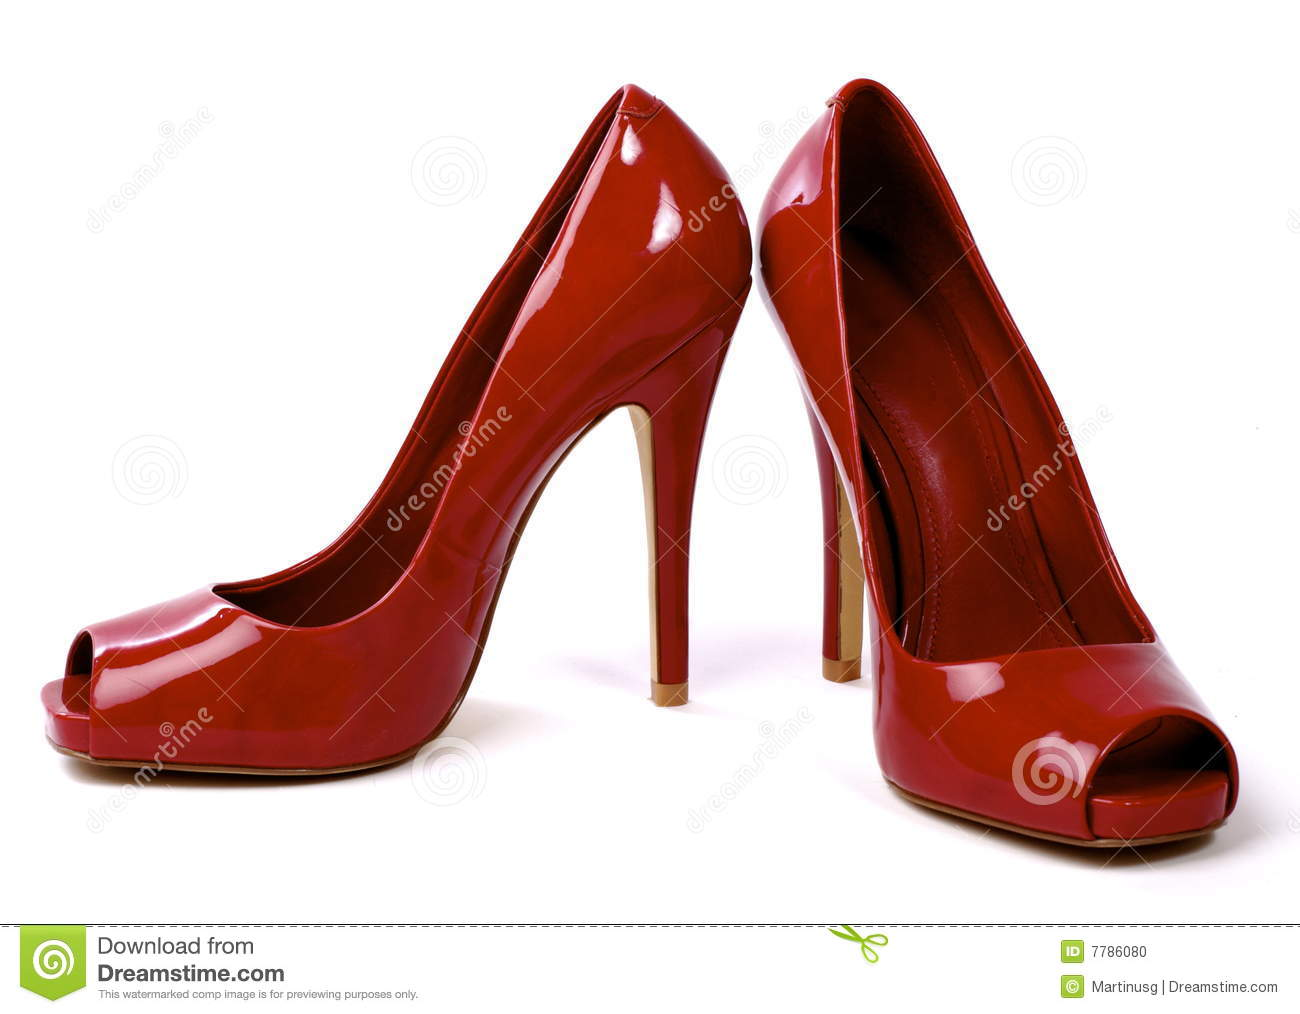 Pair Of Red Women's High-Heel Shoes 1 Stock Photo - Image: 7786080